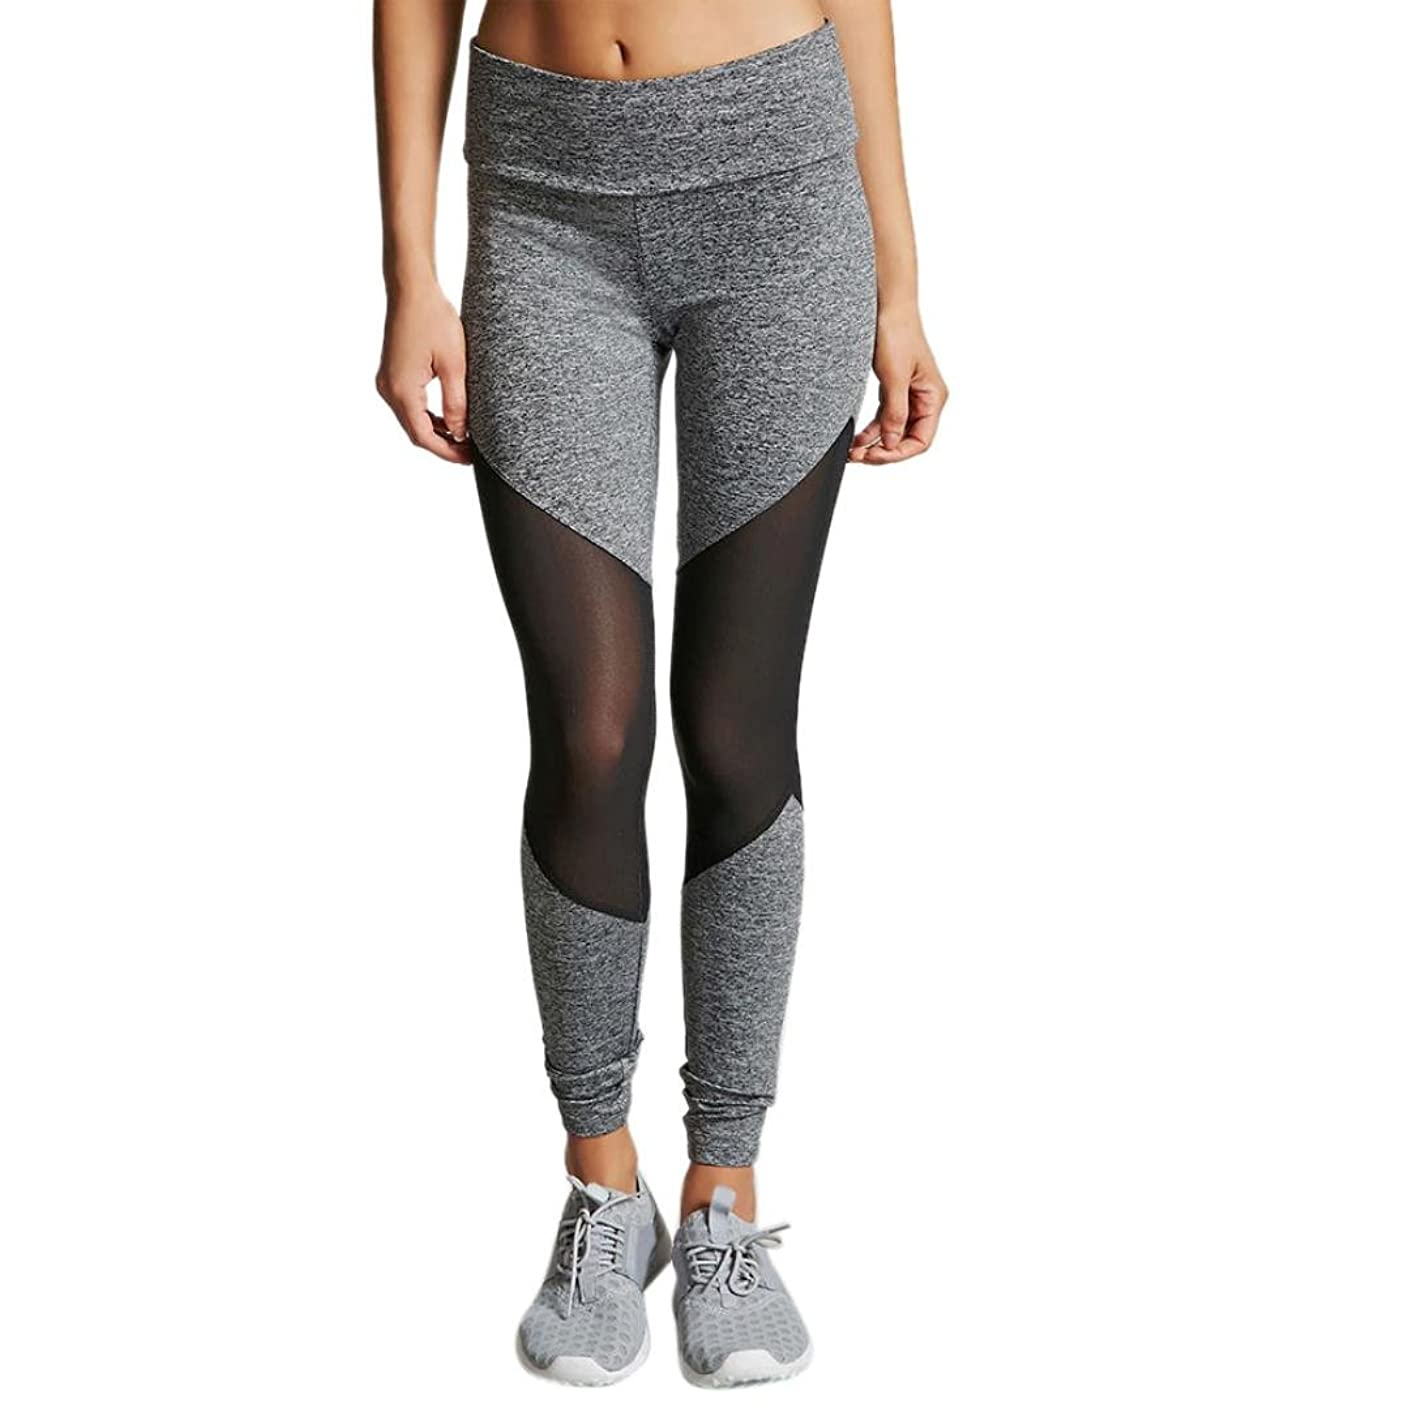 Women Yoga Pants, Neartime Clearance High Waist Sports Gym Leggings Mesh Patchwork Running Fitness Pants Workout Clothes